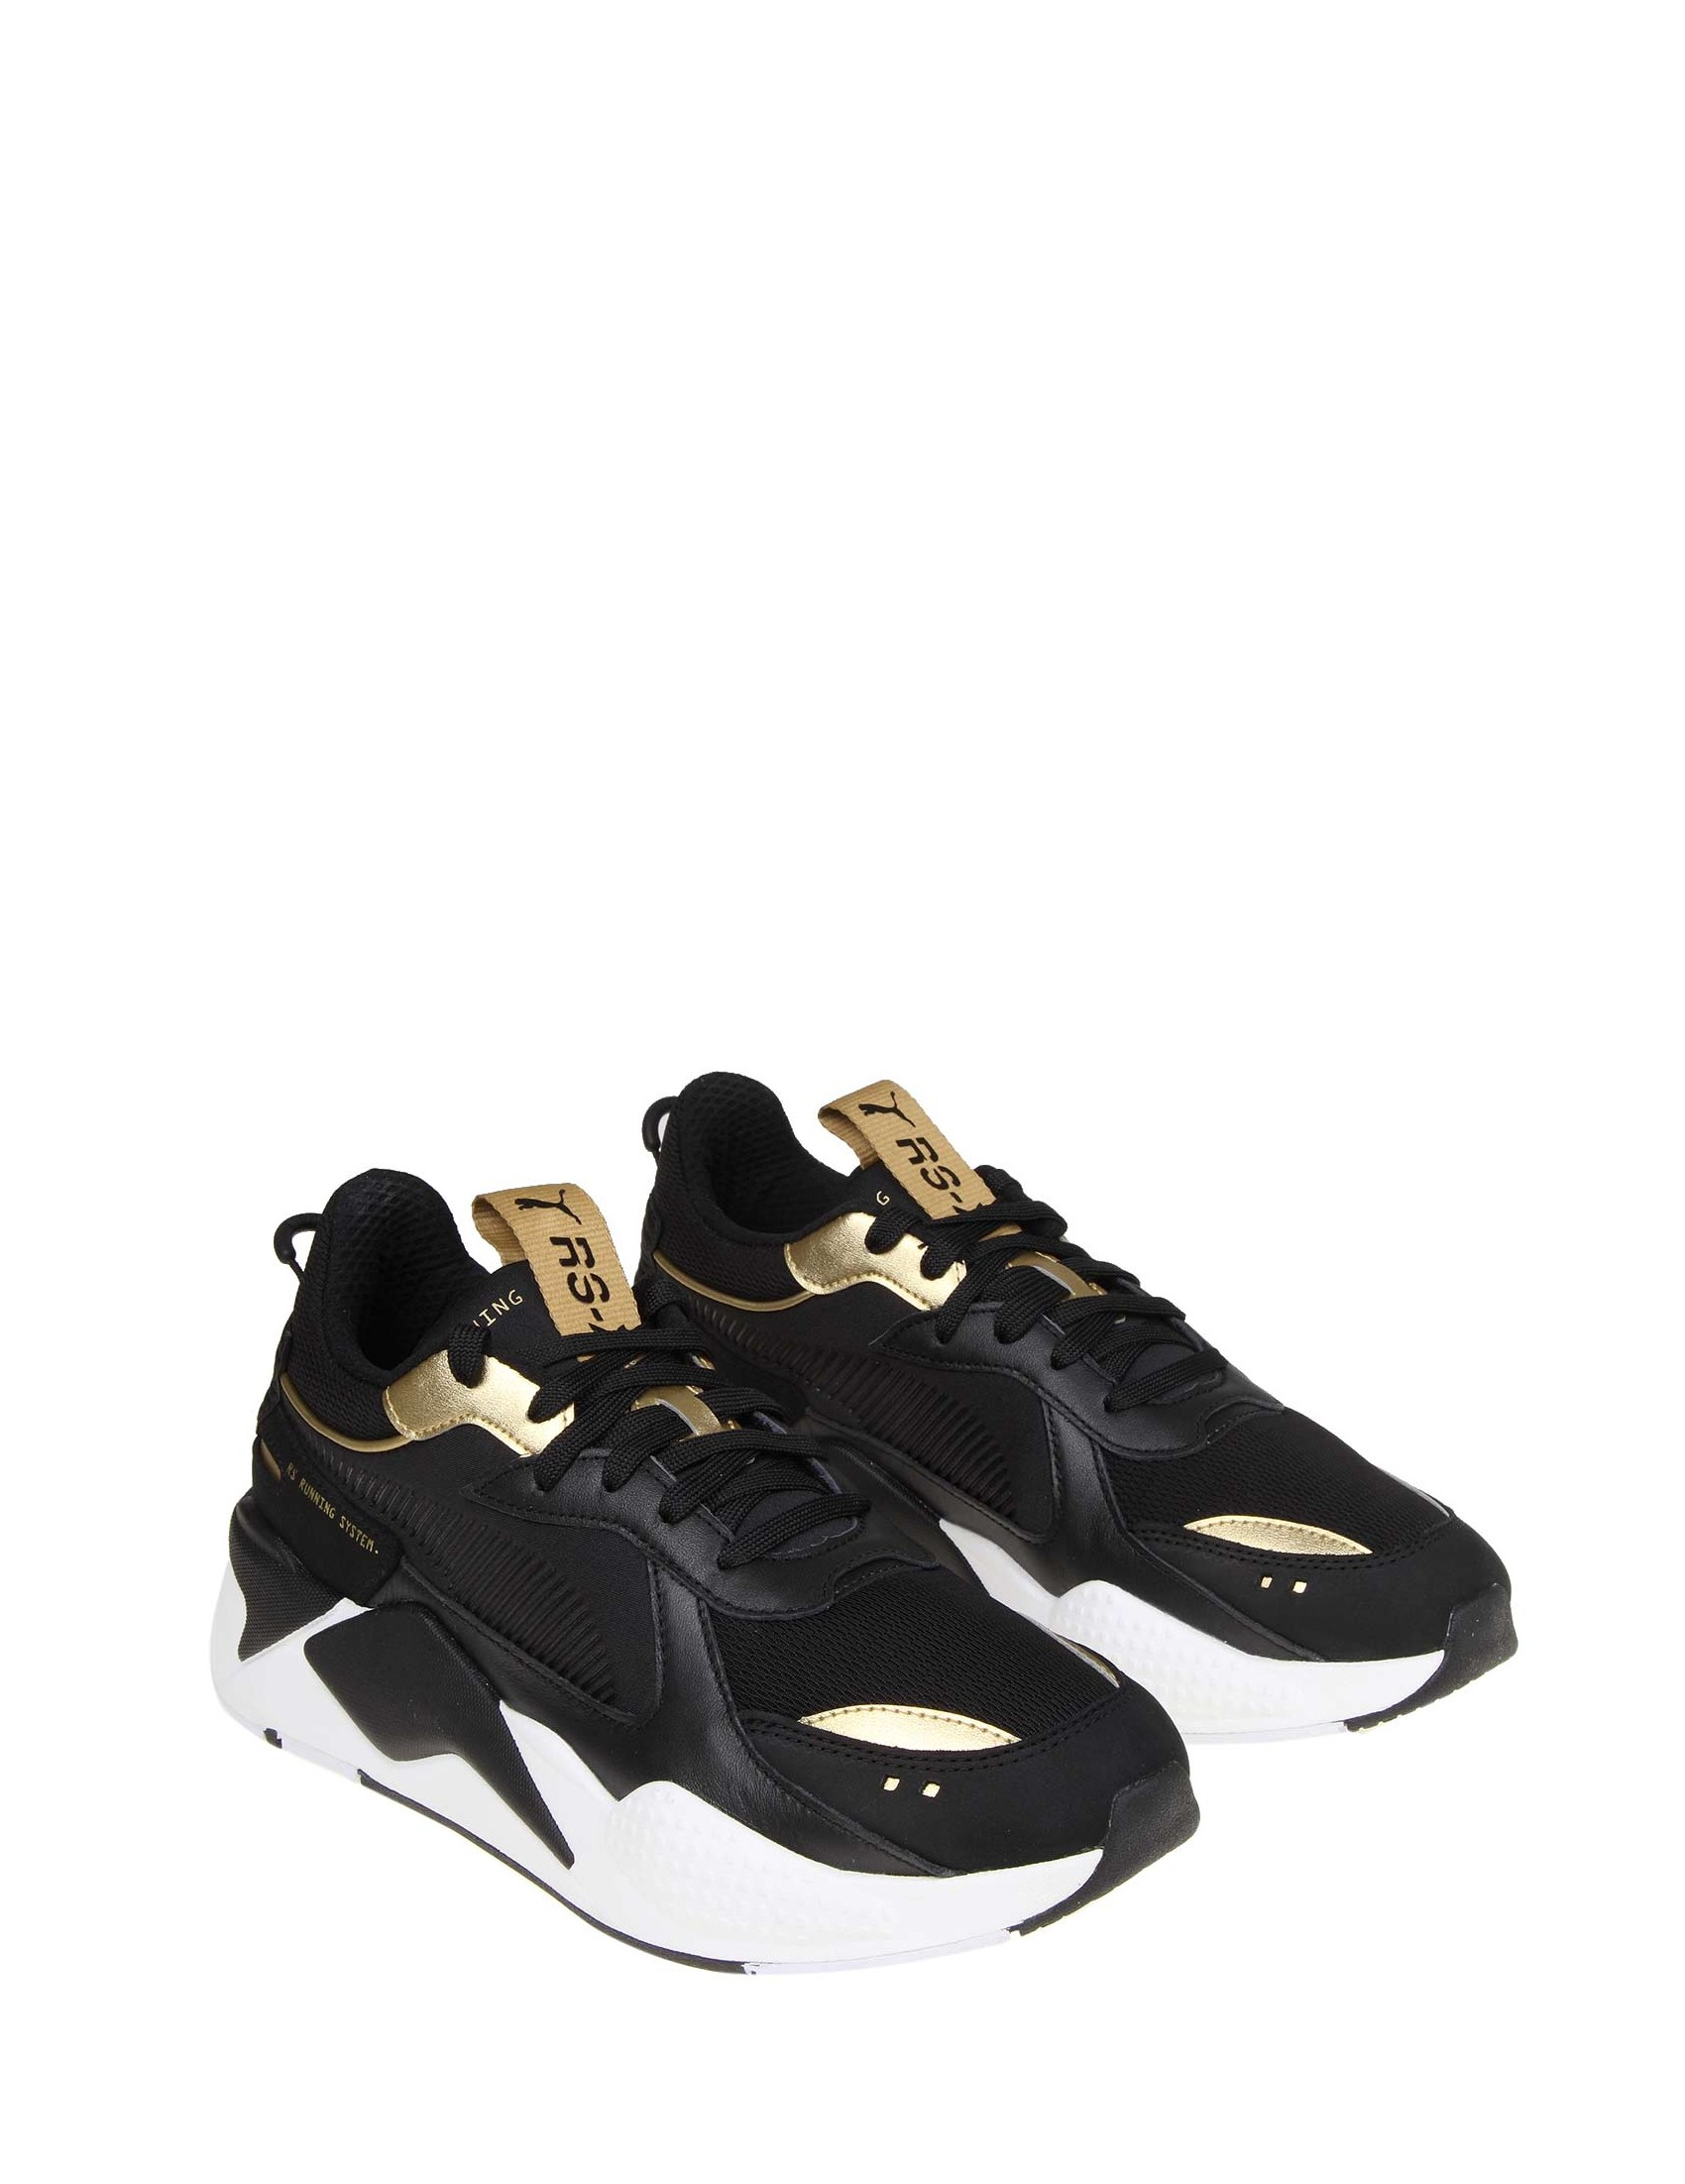 5c6bf29093d8 PUMA SNEAKERS UOMOM RS-XTROPHY NETWORK FABRIC COLOR BLACK NEW ARRIVALS